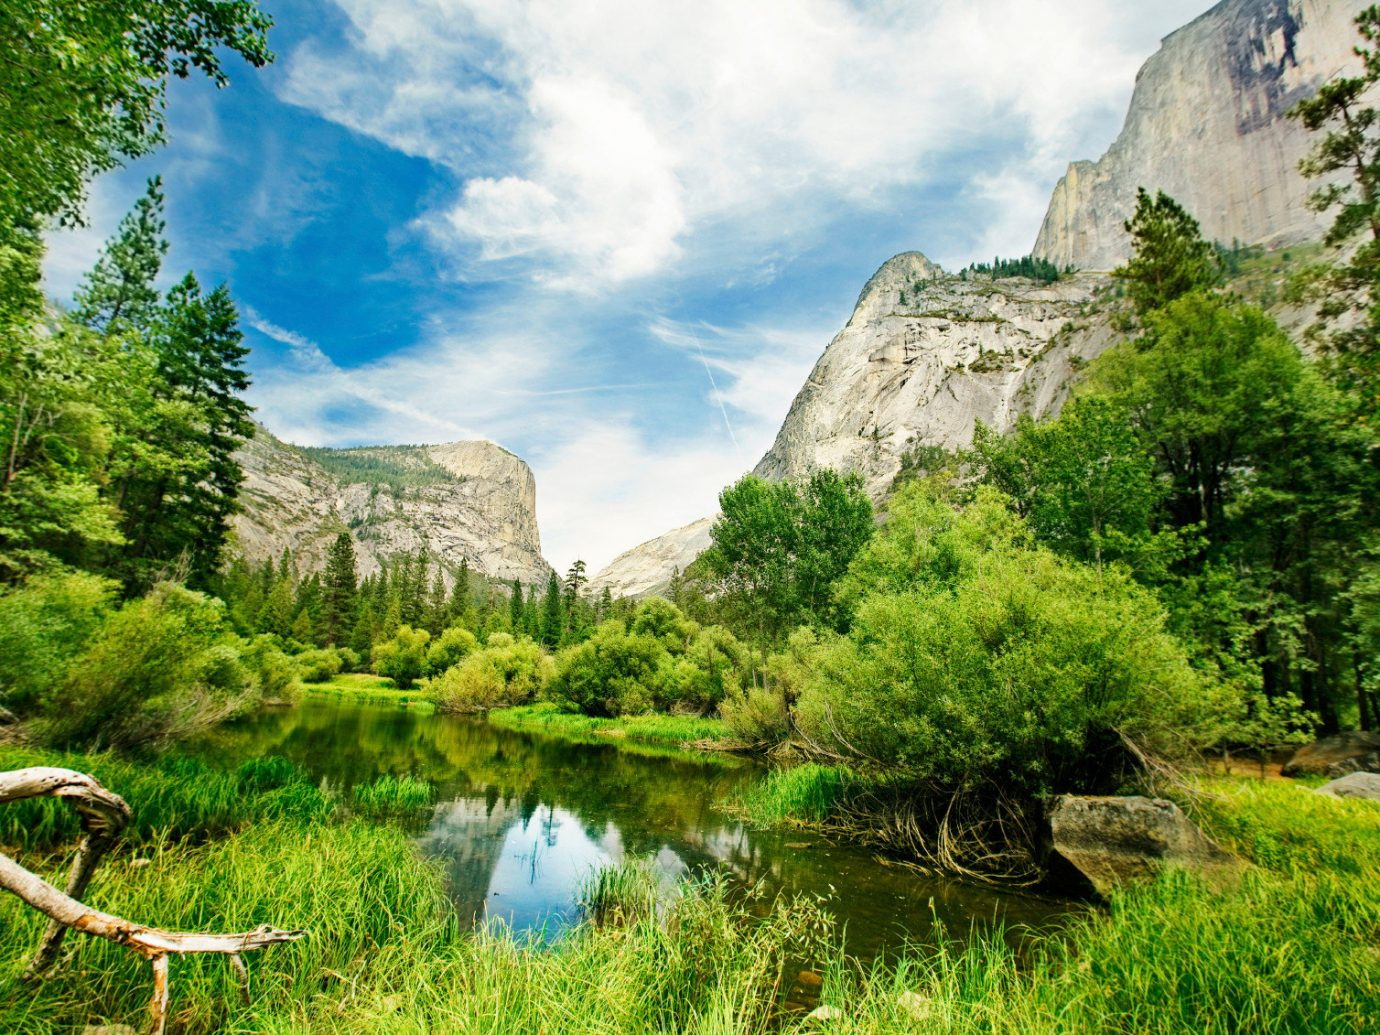 Health + Wellness Hotels National Parks Outdoors + Adventure Trip Ideas tree outdoor grass Nature wilderness ecosystem River valley mountain landscape flower green mountain range Lake meadow woodland reflection park Garden biome national park Jungle stream pond water feature surrounded grassy lush hillside plant bushes Forest highland